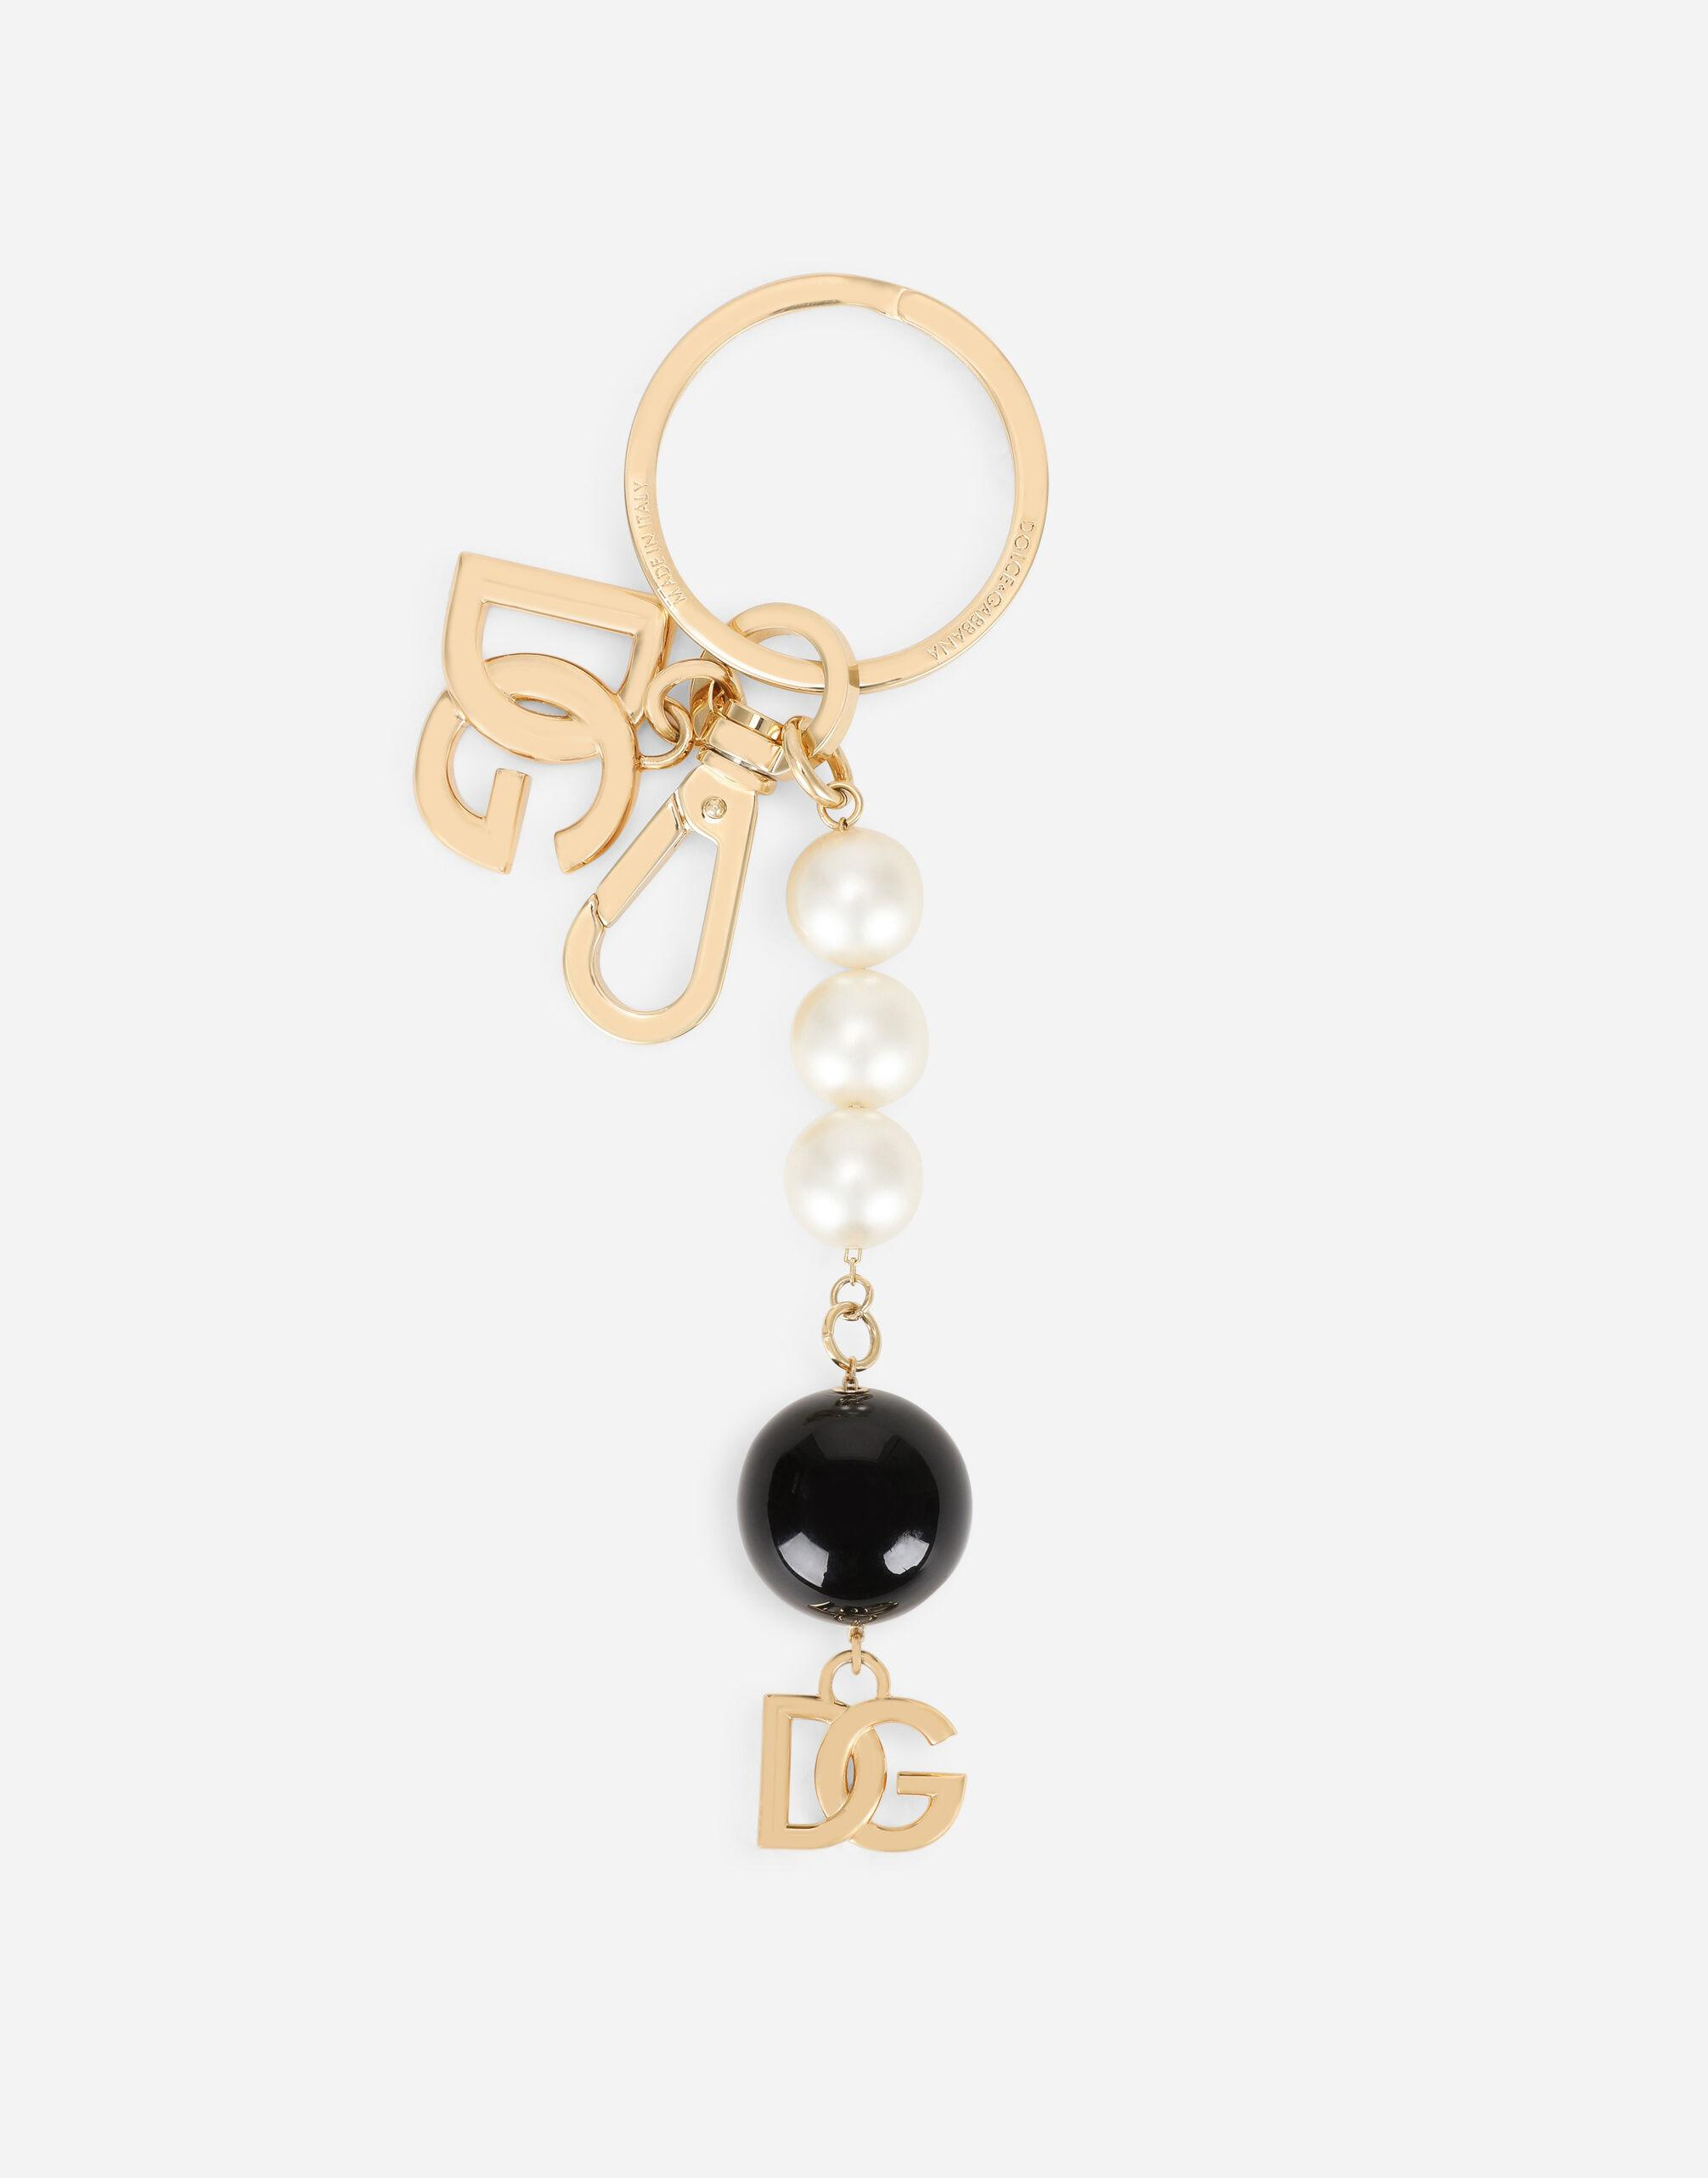 Metal keychain with DG logo and pearls